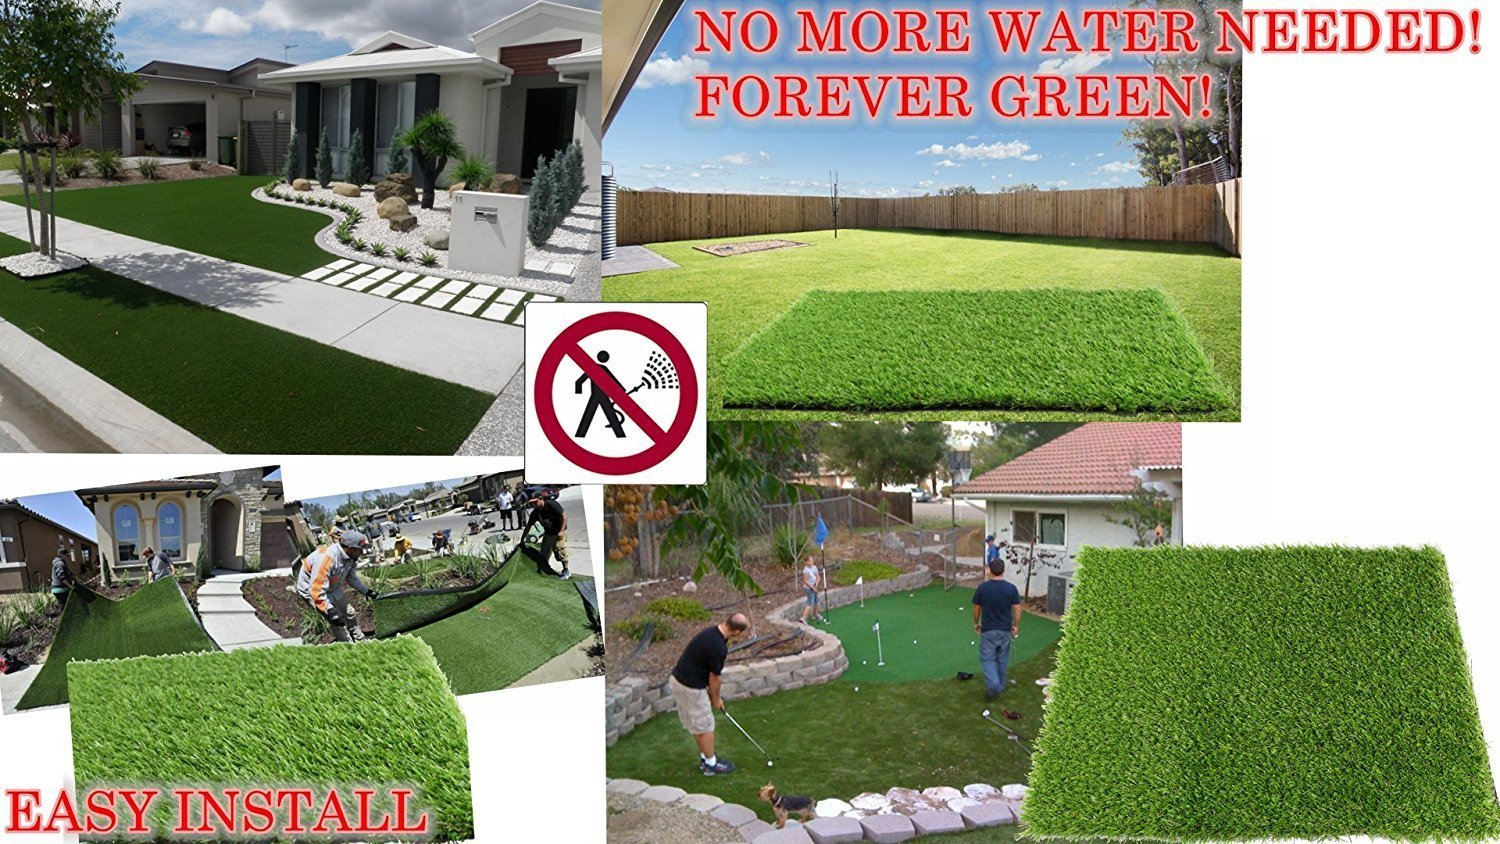 ALTRUISTIC Premium Realistic Artificial Grass in Many Sizes (7 ft X 13 ft = 91 square ft)